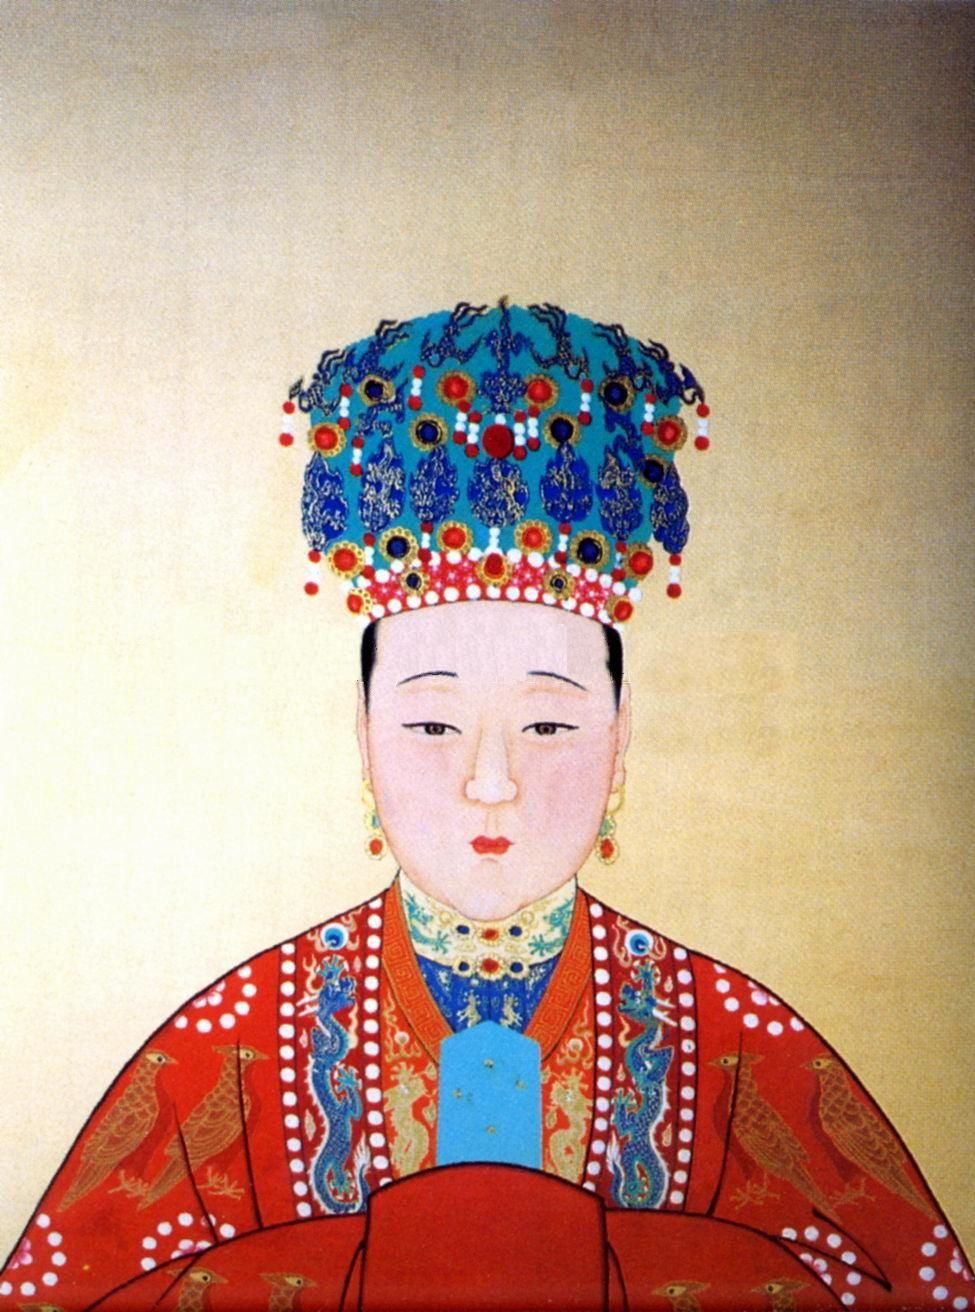 1000+ images about ♥Chinese Dynasties - Ming♥ on Pinterest ...